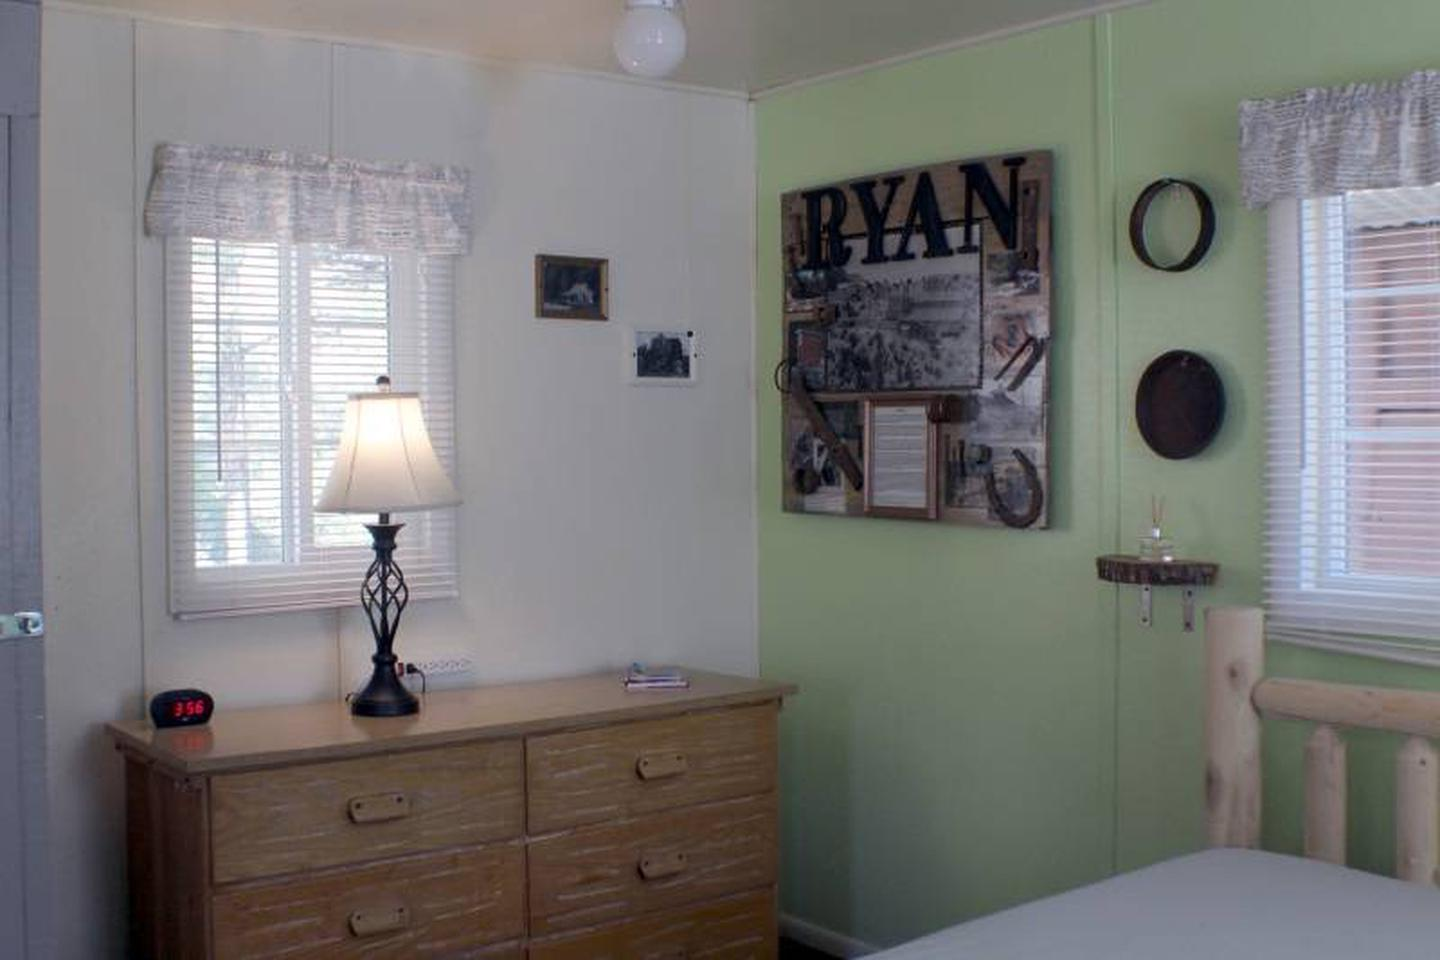 dresser, lampCabin 6: View to left of full bed. Dresser with lamp and alarm clock with USB charging port.